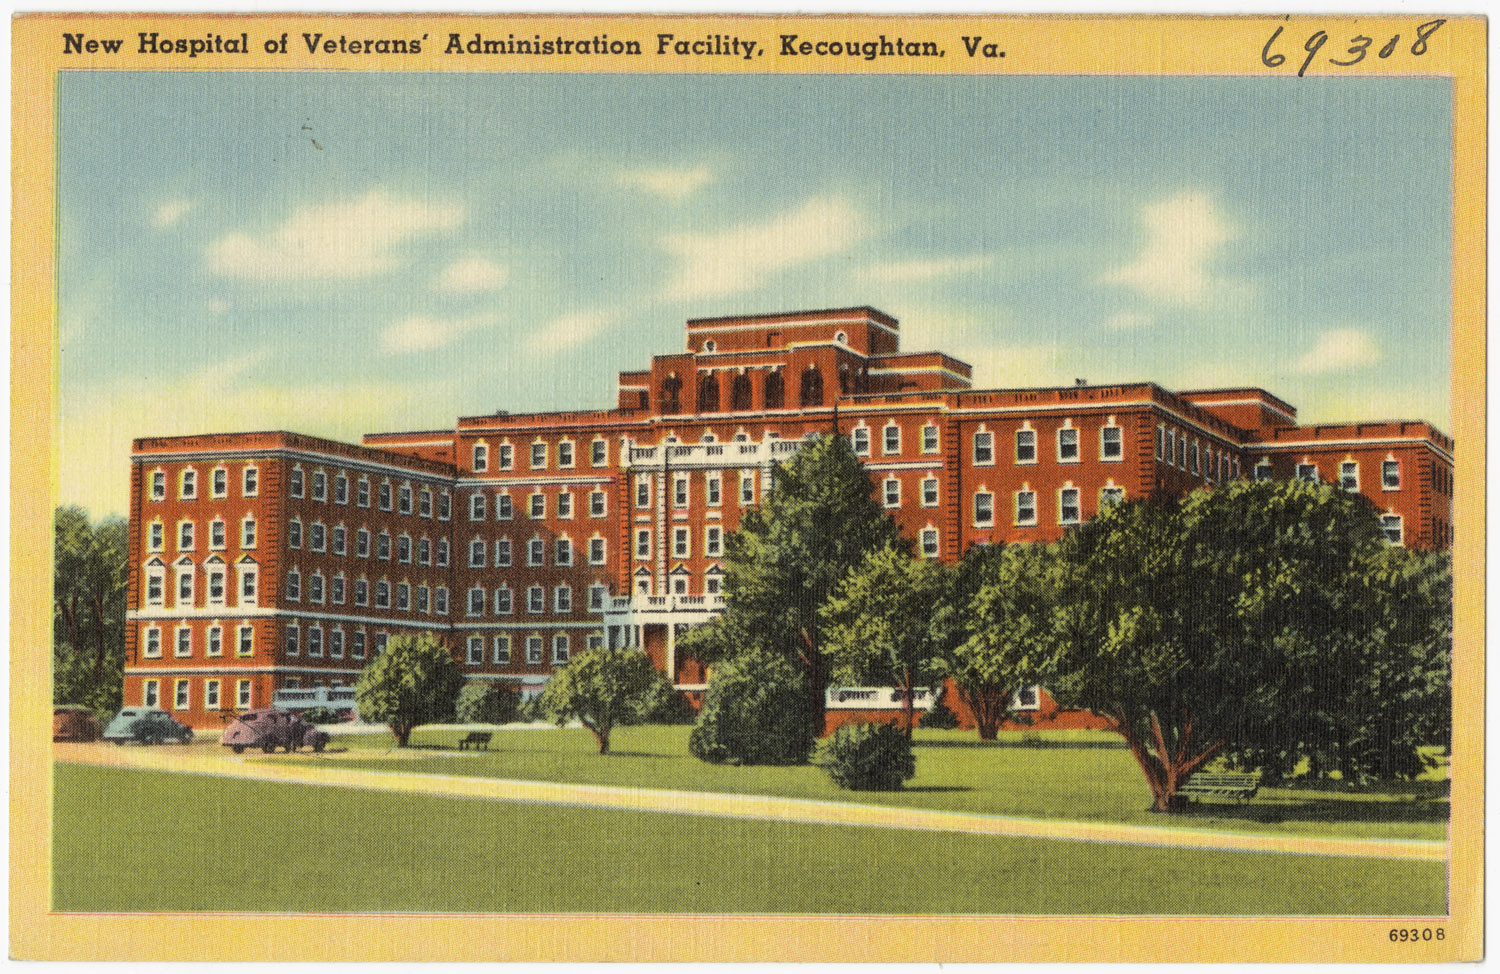 Five Questions For: Author Suzanne Gordon on the VA as a 'Model for American Health Care'